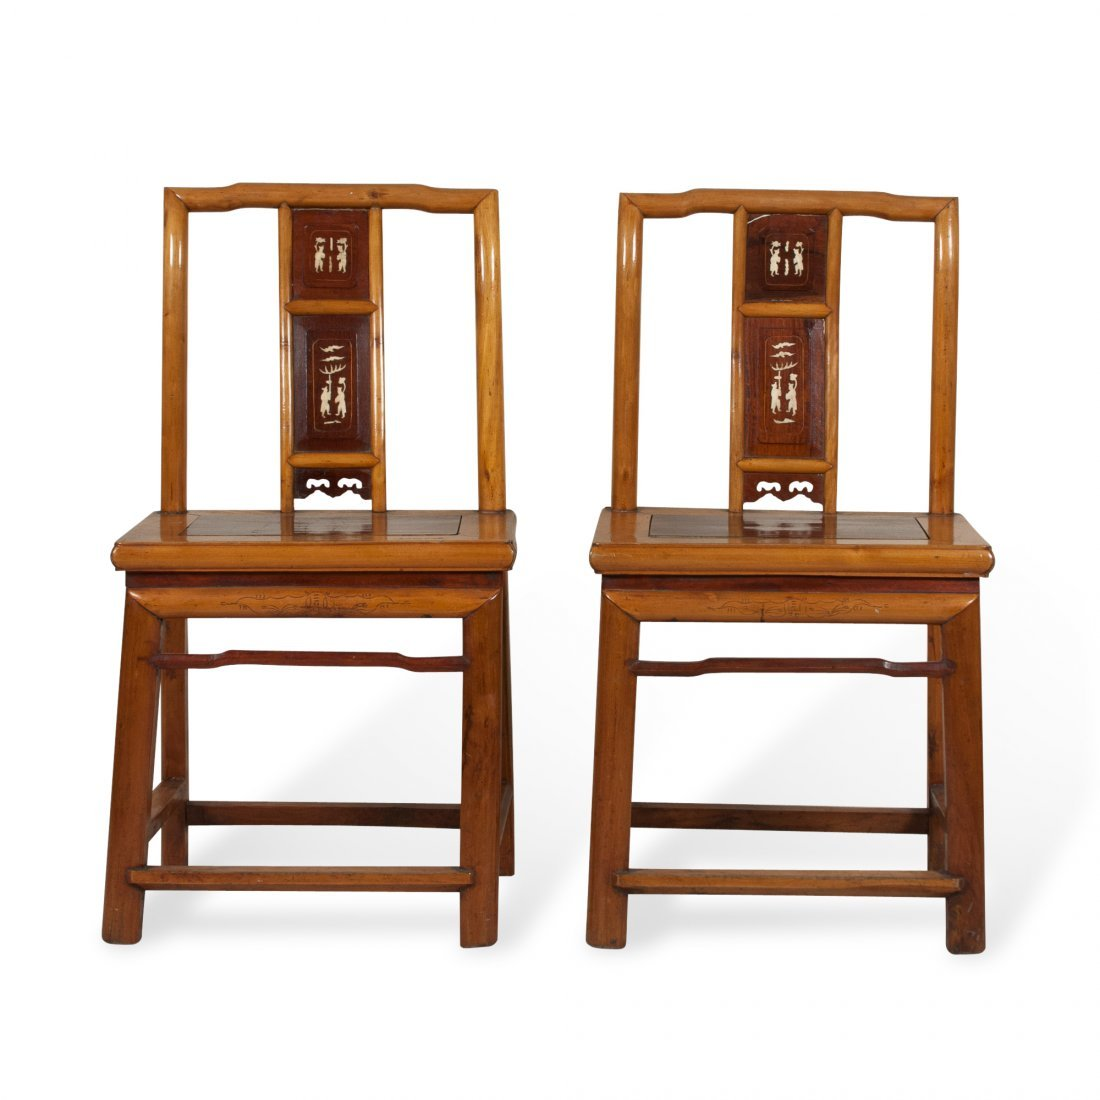 Quin Chairs, Pair